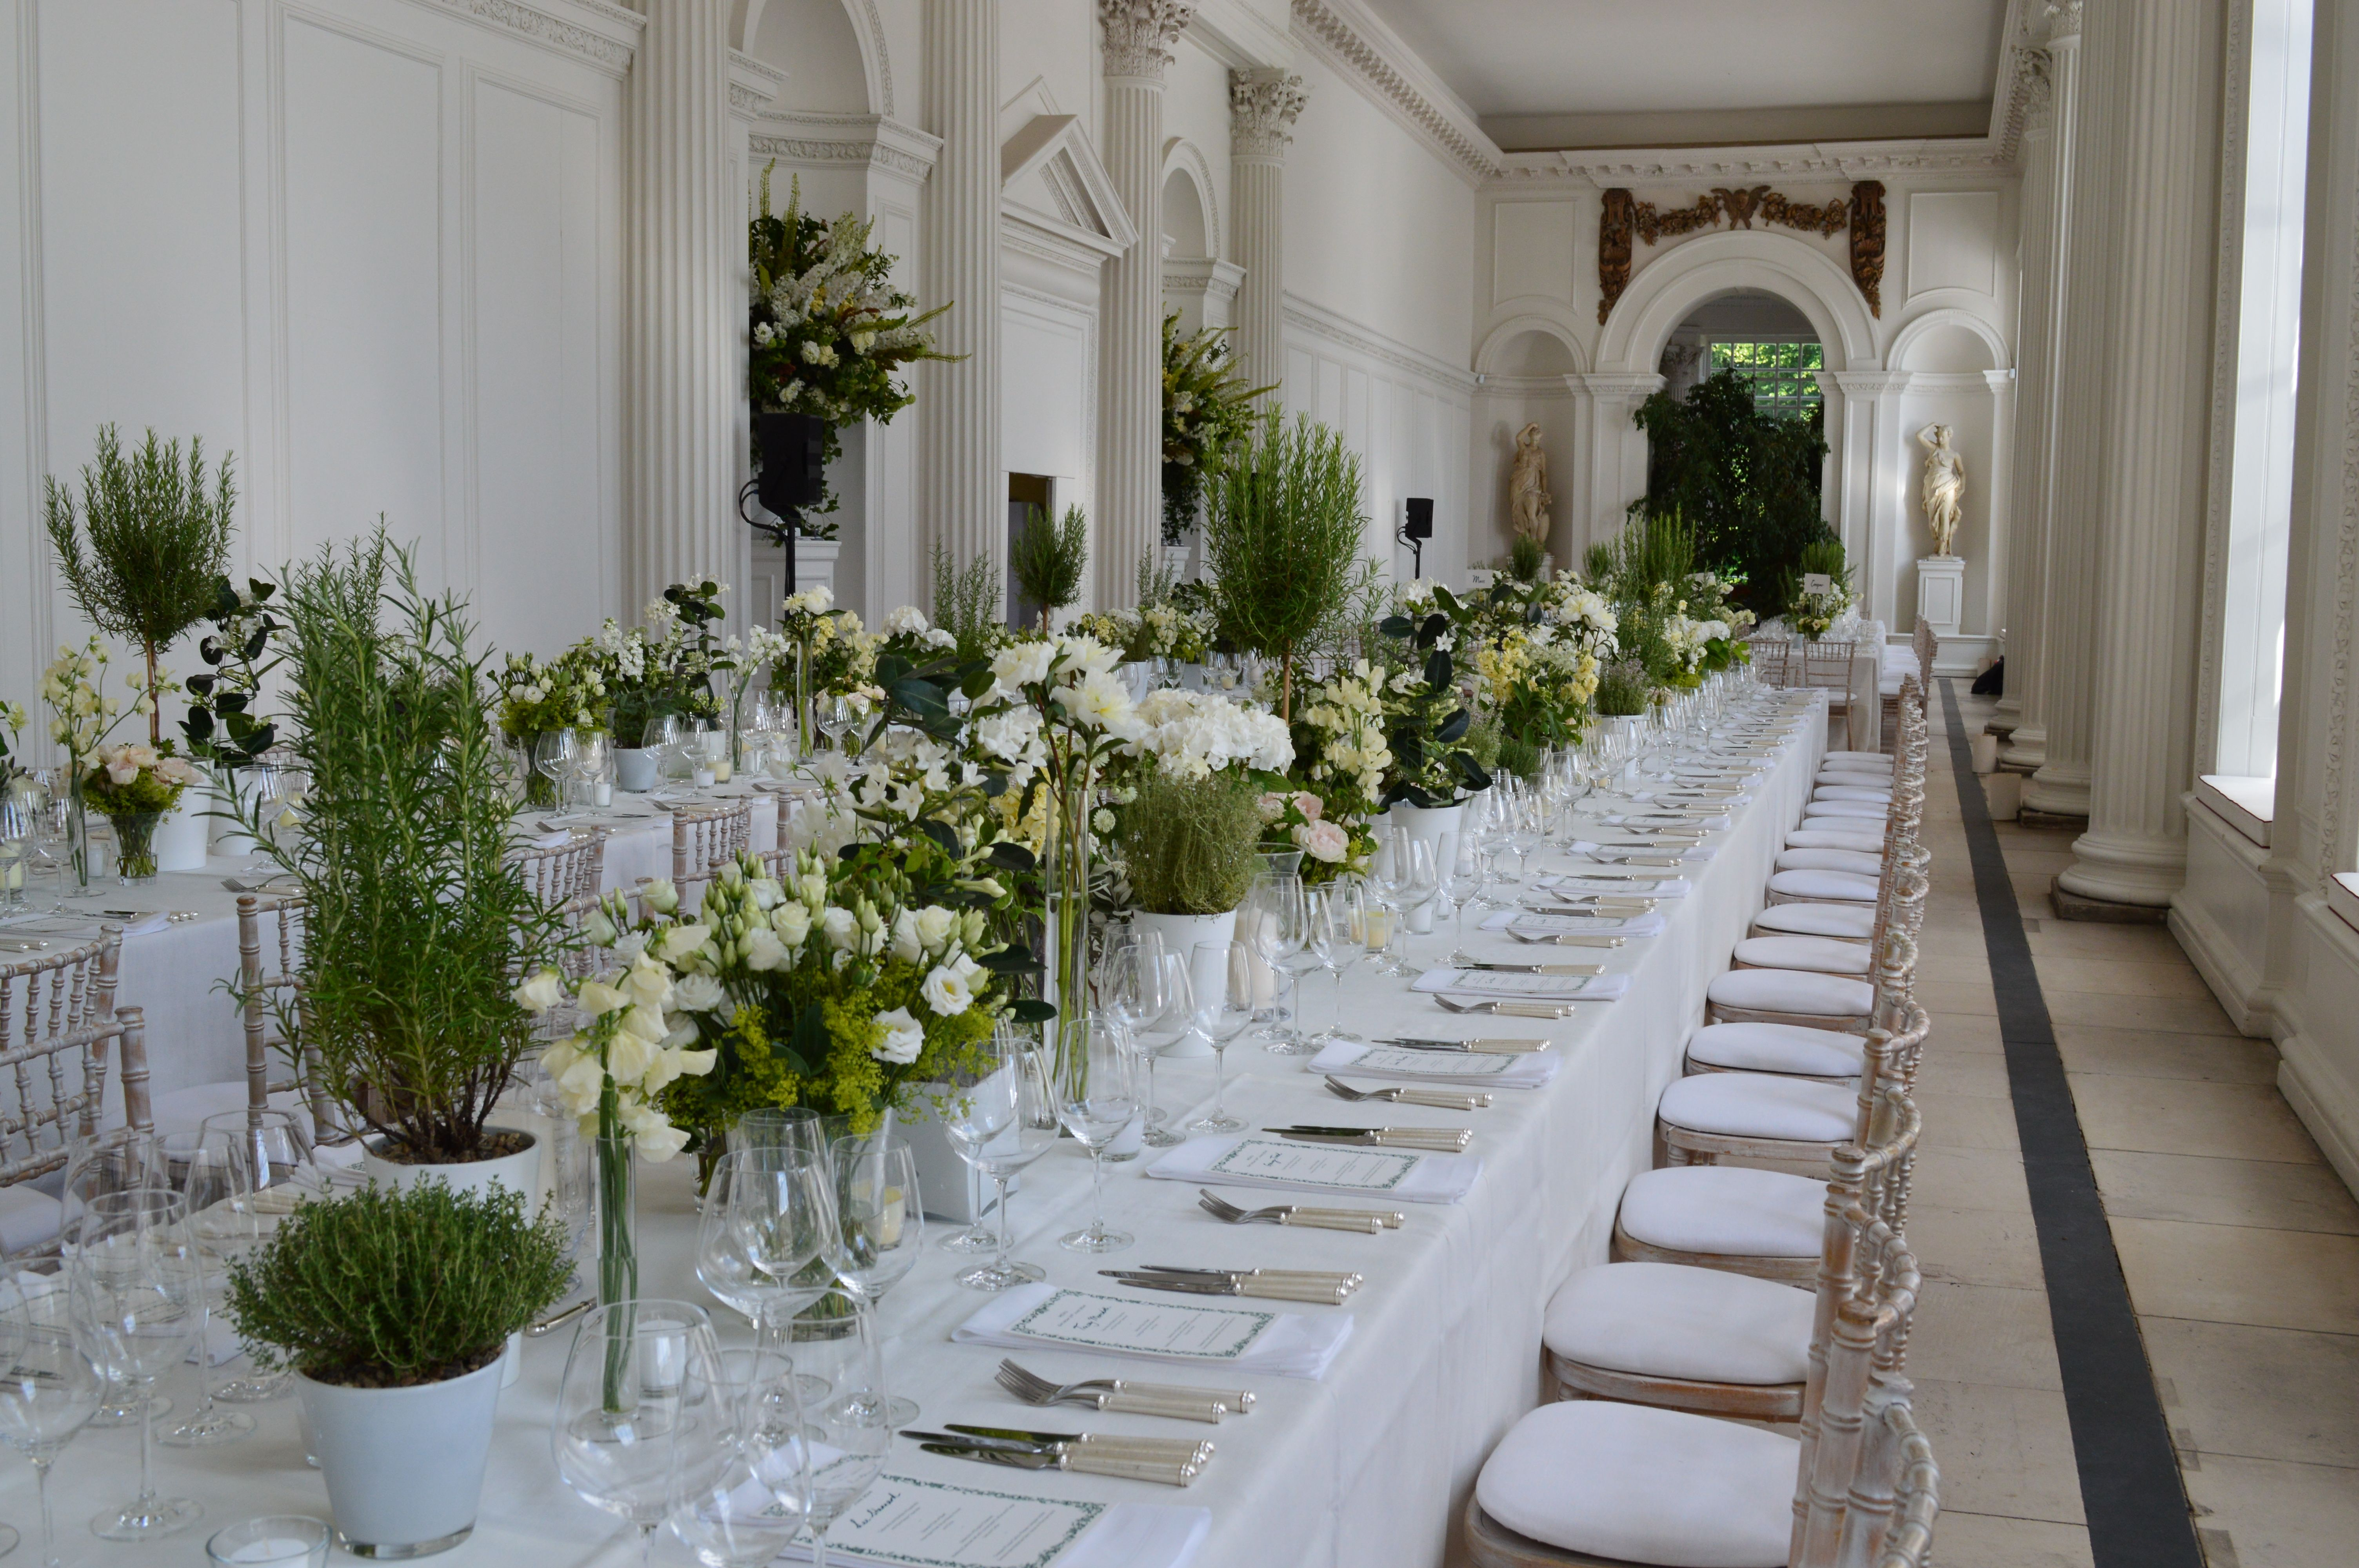 Banqueting Tables And Green Succulents For A Unique Wedding Reception In The Orangery At Kensington Pala Orangery Unique Wedding Receptions Kensington Palace